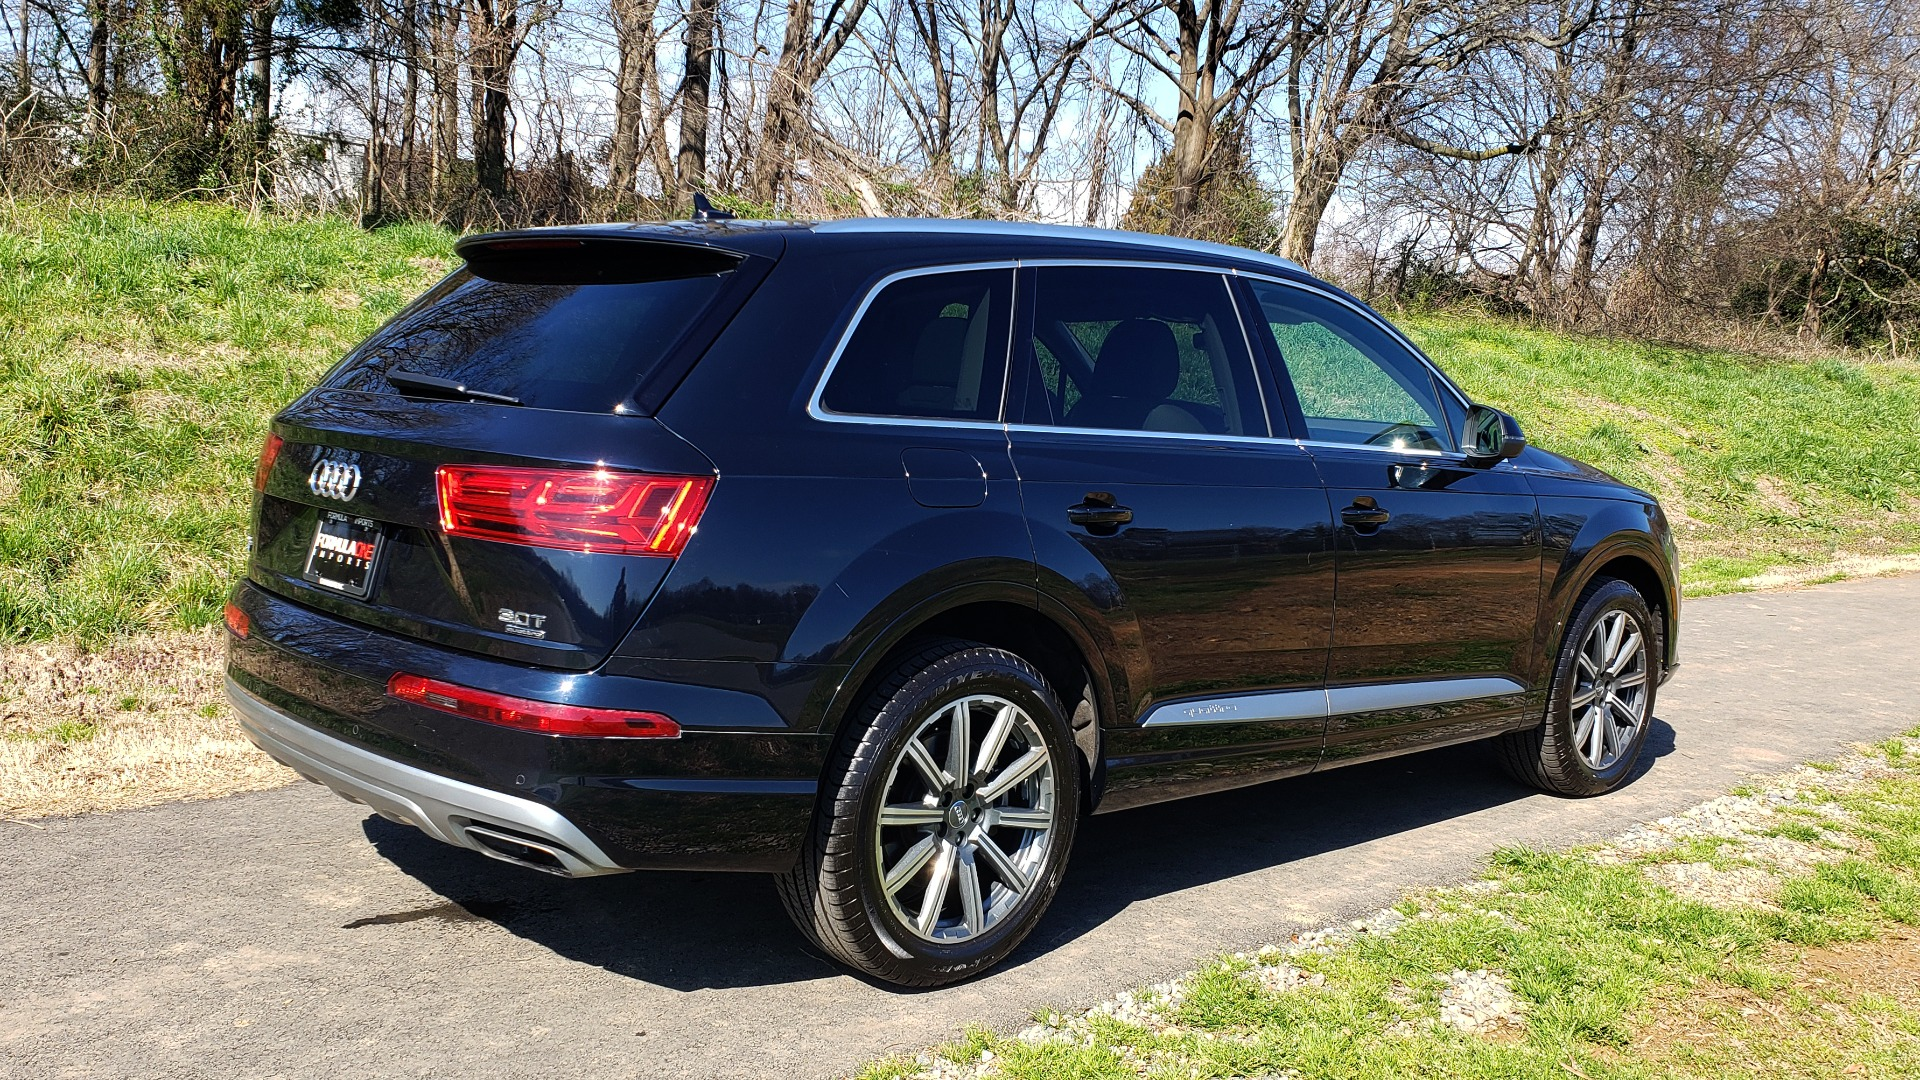 Used 2018 Audi Q7 PRESTIGE 3.0T CLD WTHR / NAV / BOSE / HEADS-UP / REARVIEW for sale Sold at Formula Imports in Charlotte NC 28227 6